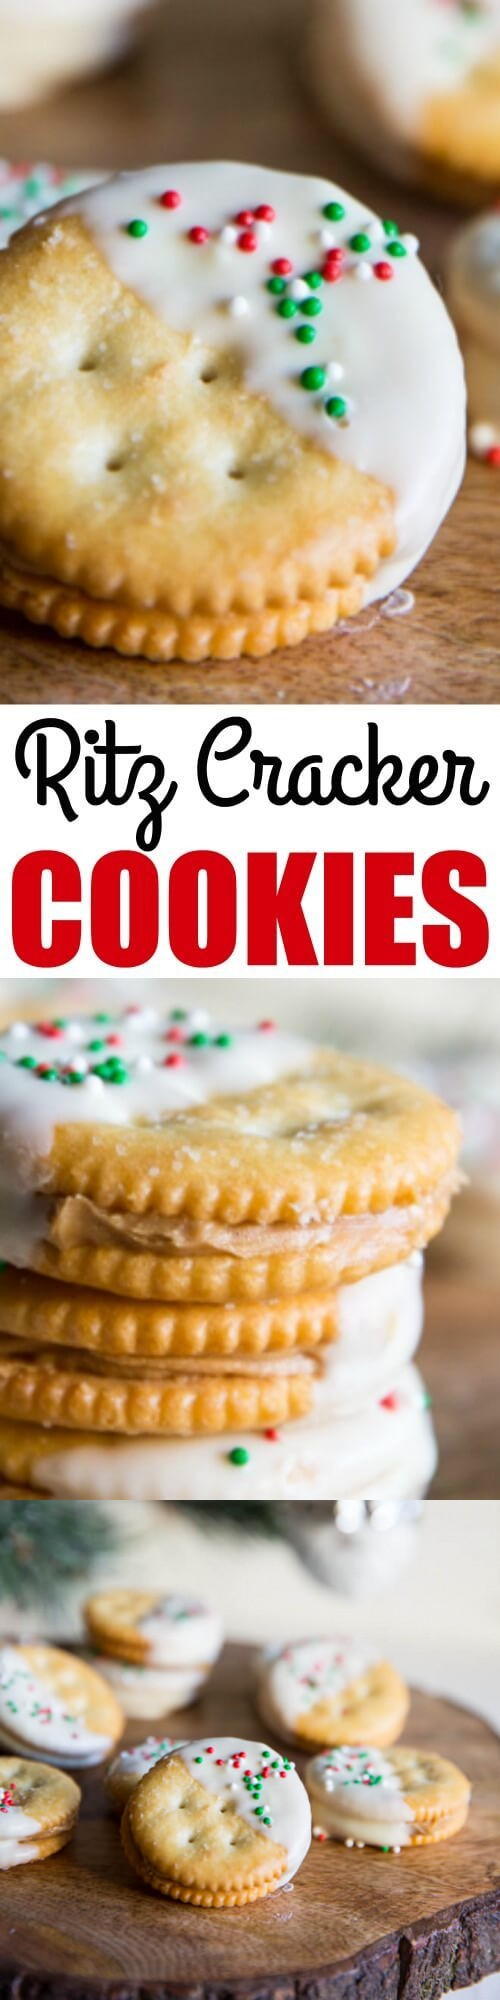 Ritz Cracker Cookies